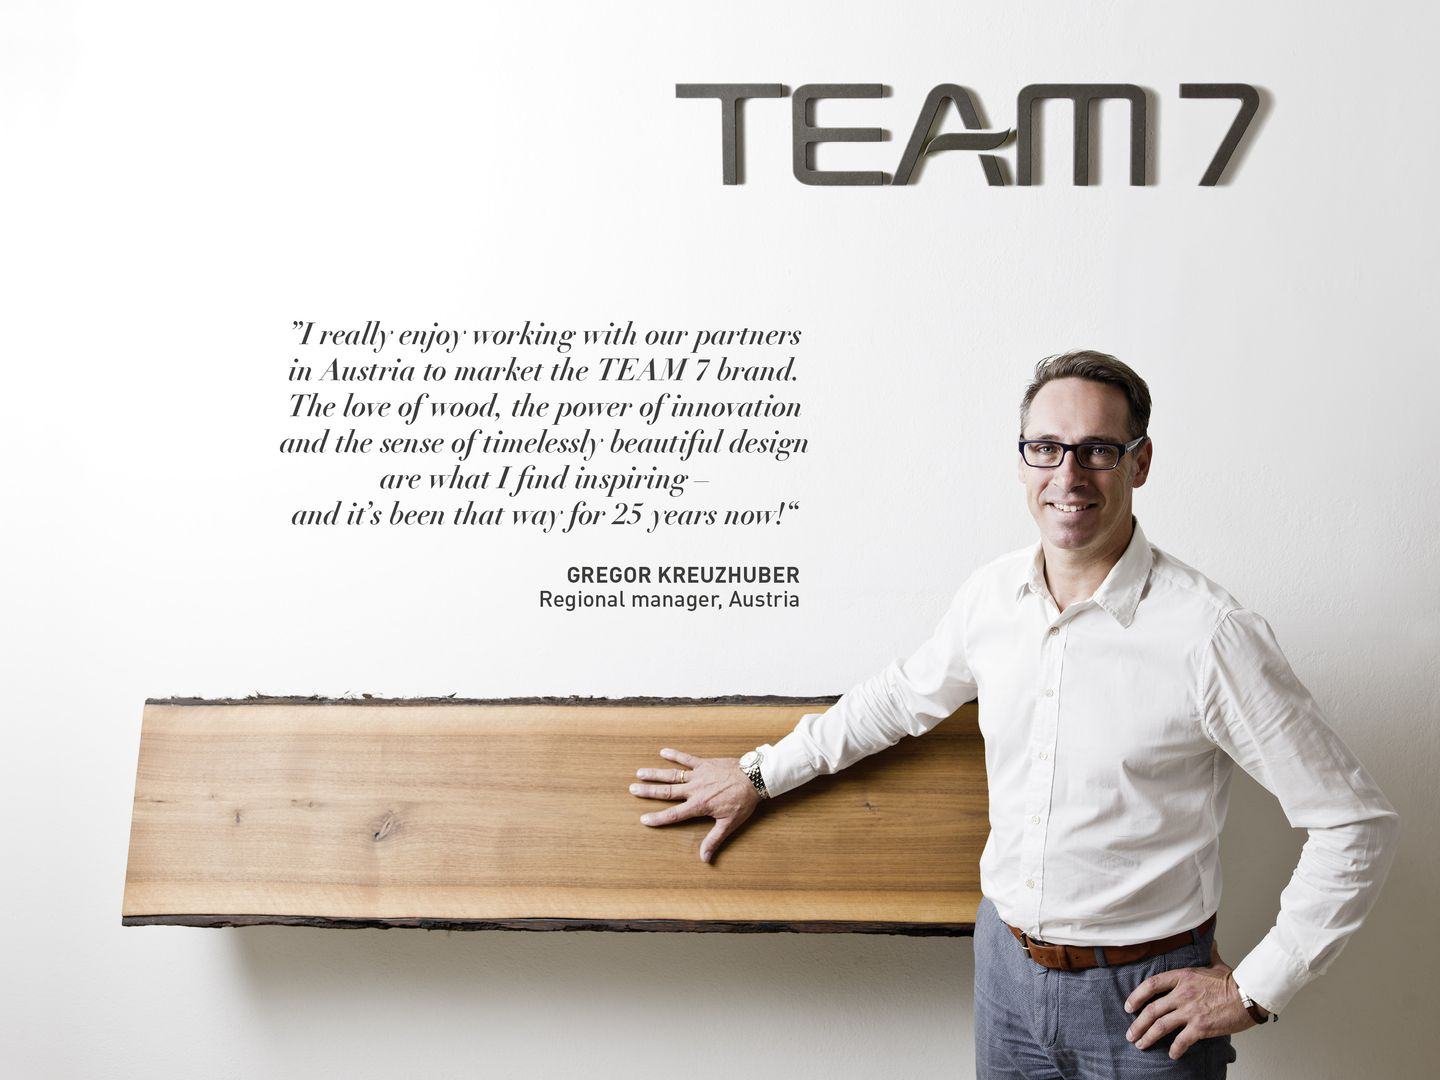 Statement by Gregor Kreuzhuber about working at TEAM 7